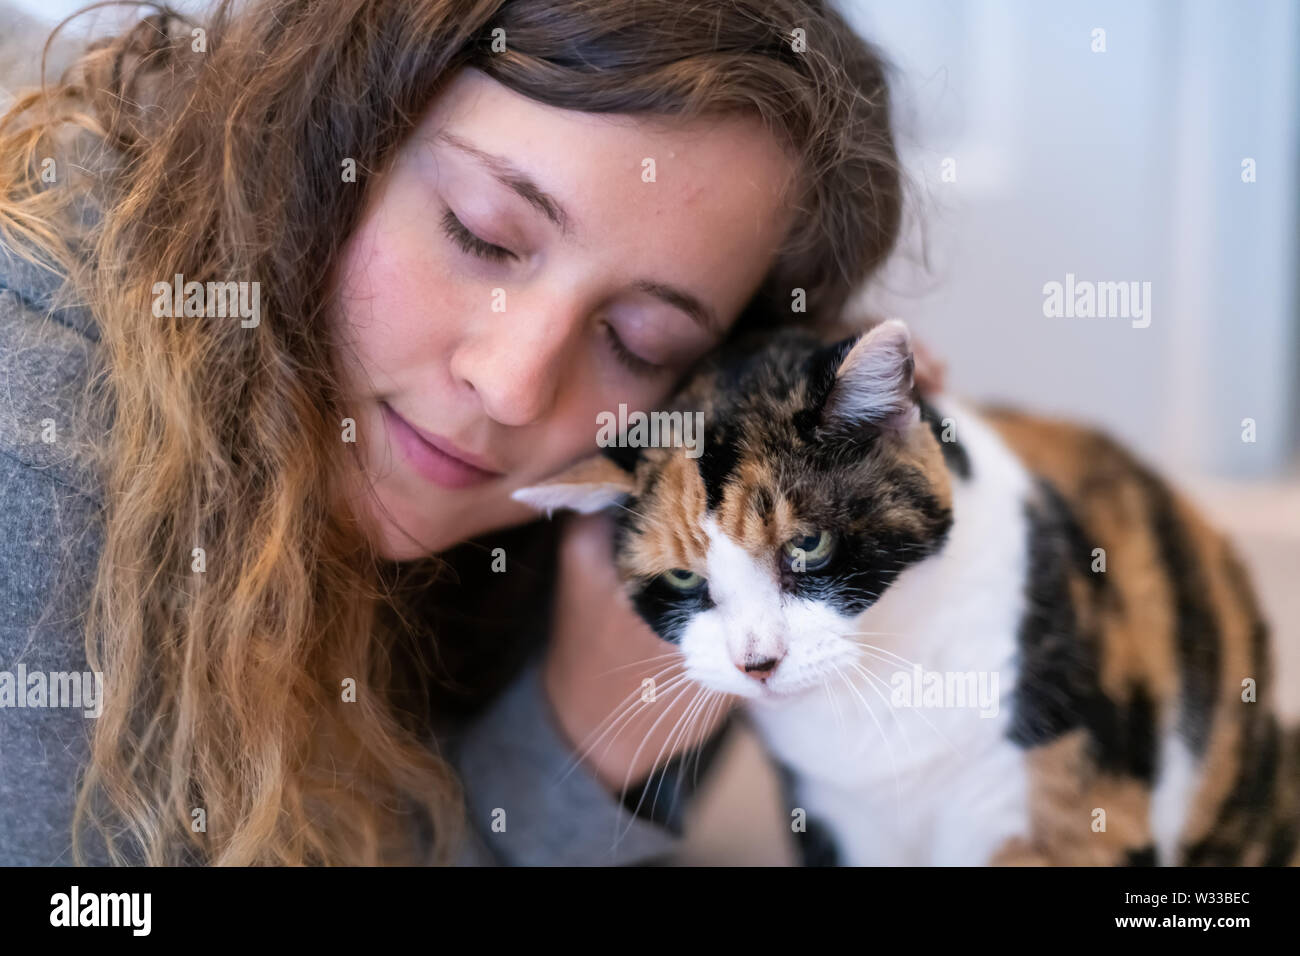 Closeup portrait of happy smiling young woman bonding with calico cat pet, bumping rubbing bunting heads, showing affection - Stock Image